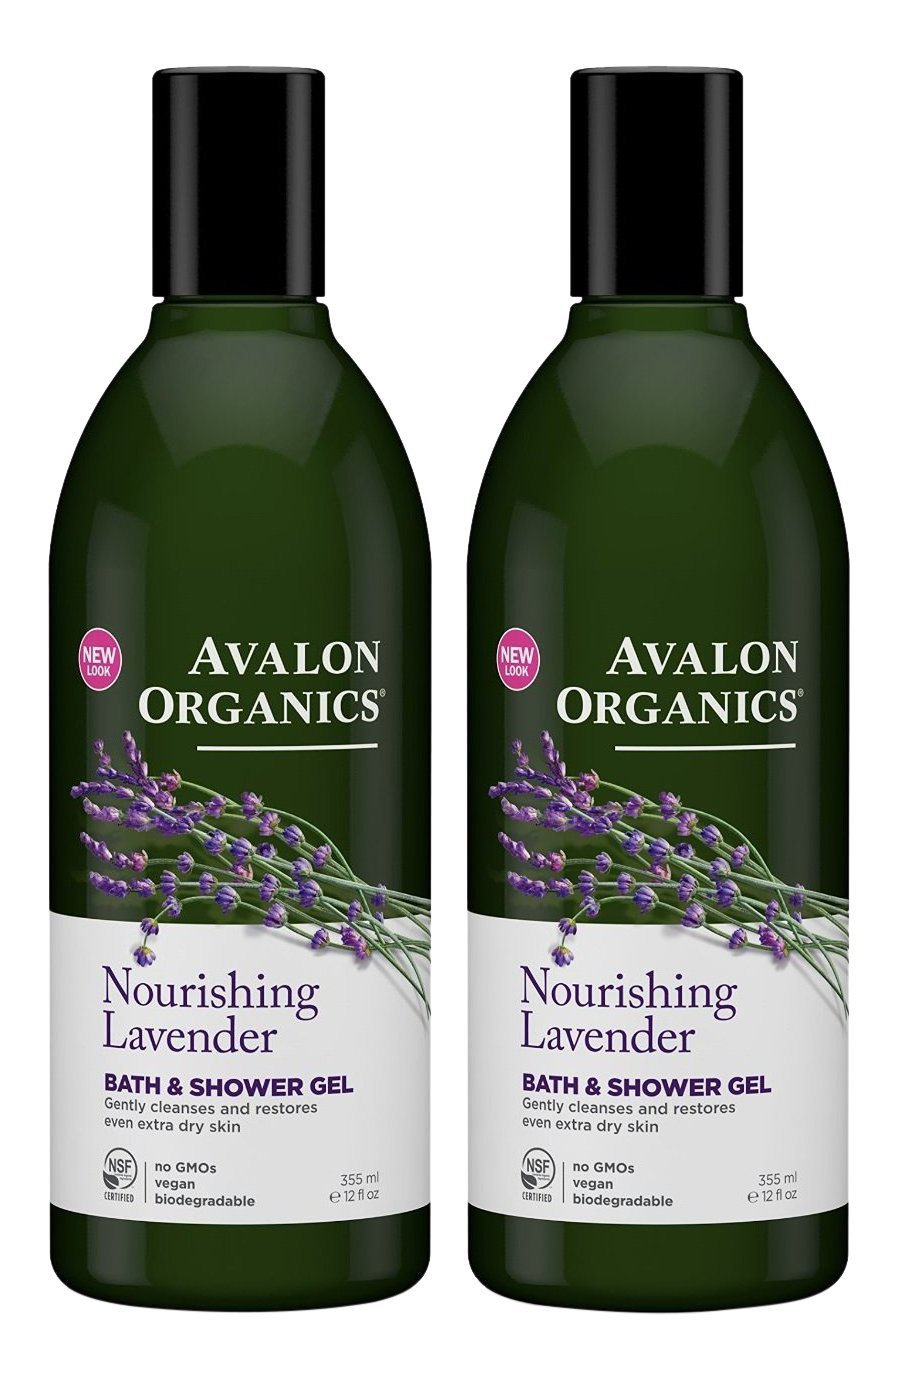 Avalon Organics Lavender Bath and Shower Gel - Buy Fast delivery